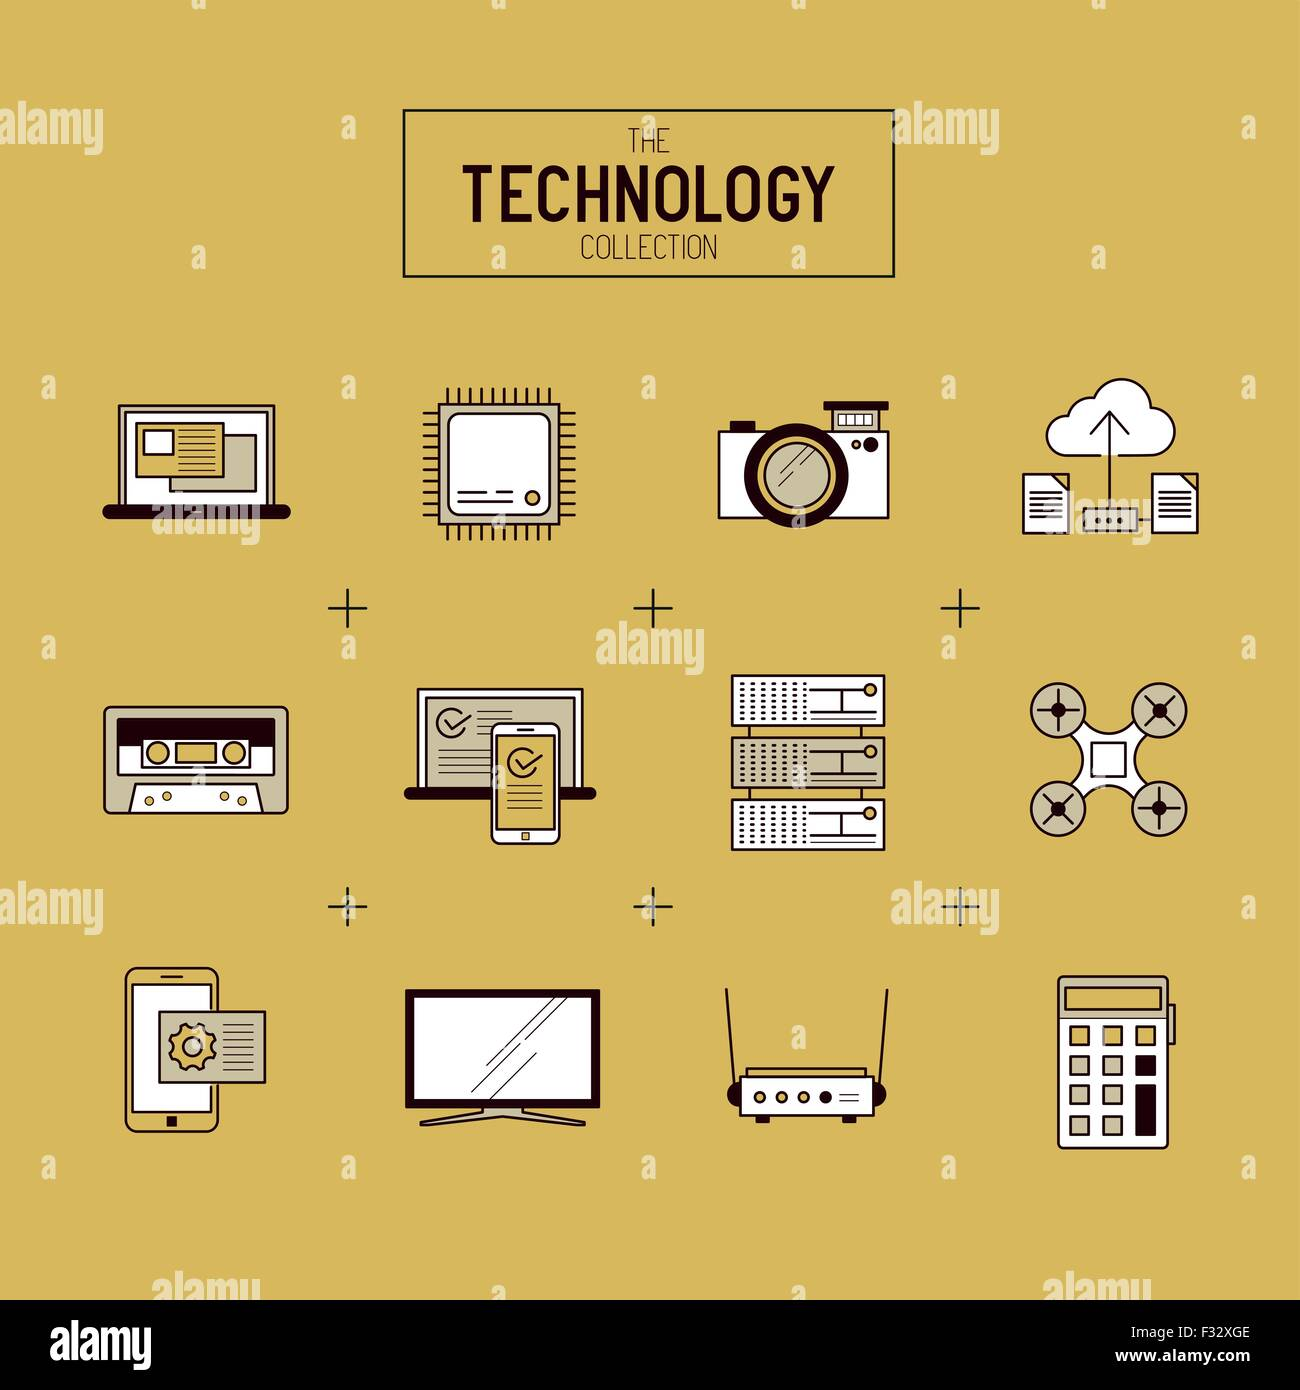 Technology Vector Icon Set. A collection of gold modern technology items including a CPU, drone, TV and mobile devices. - Stock Image